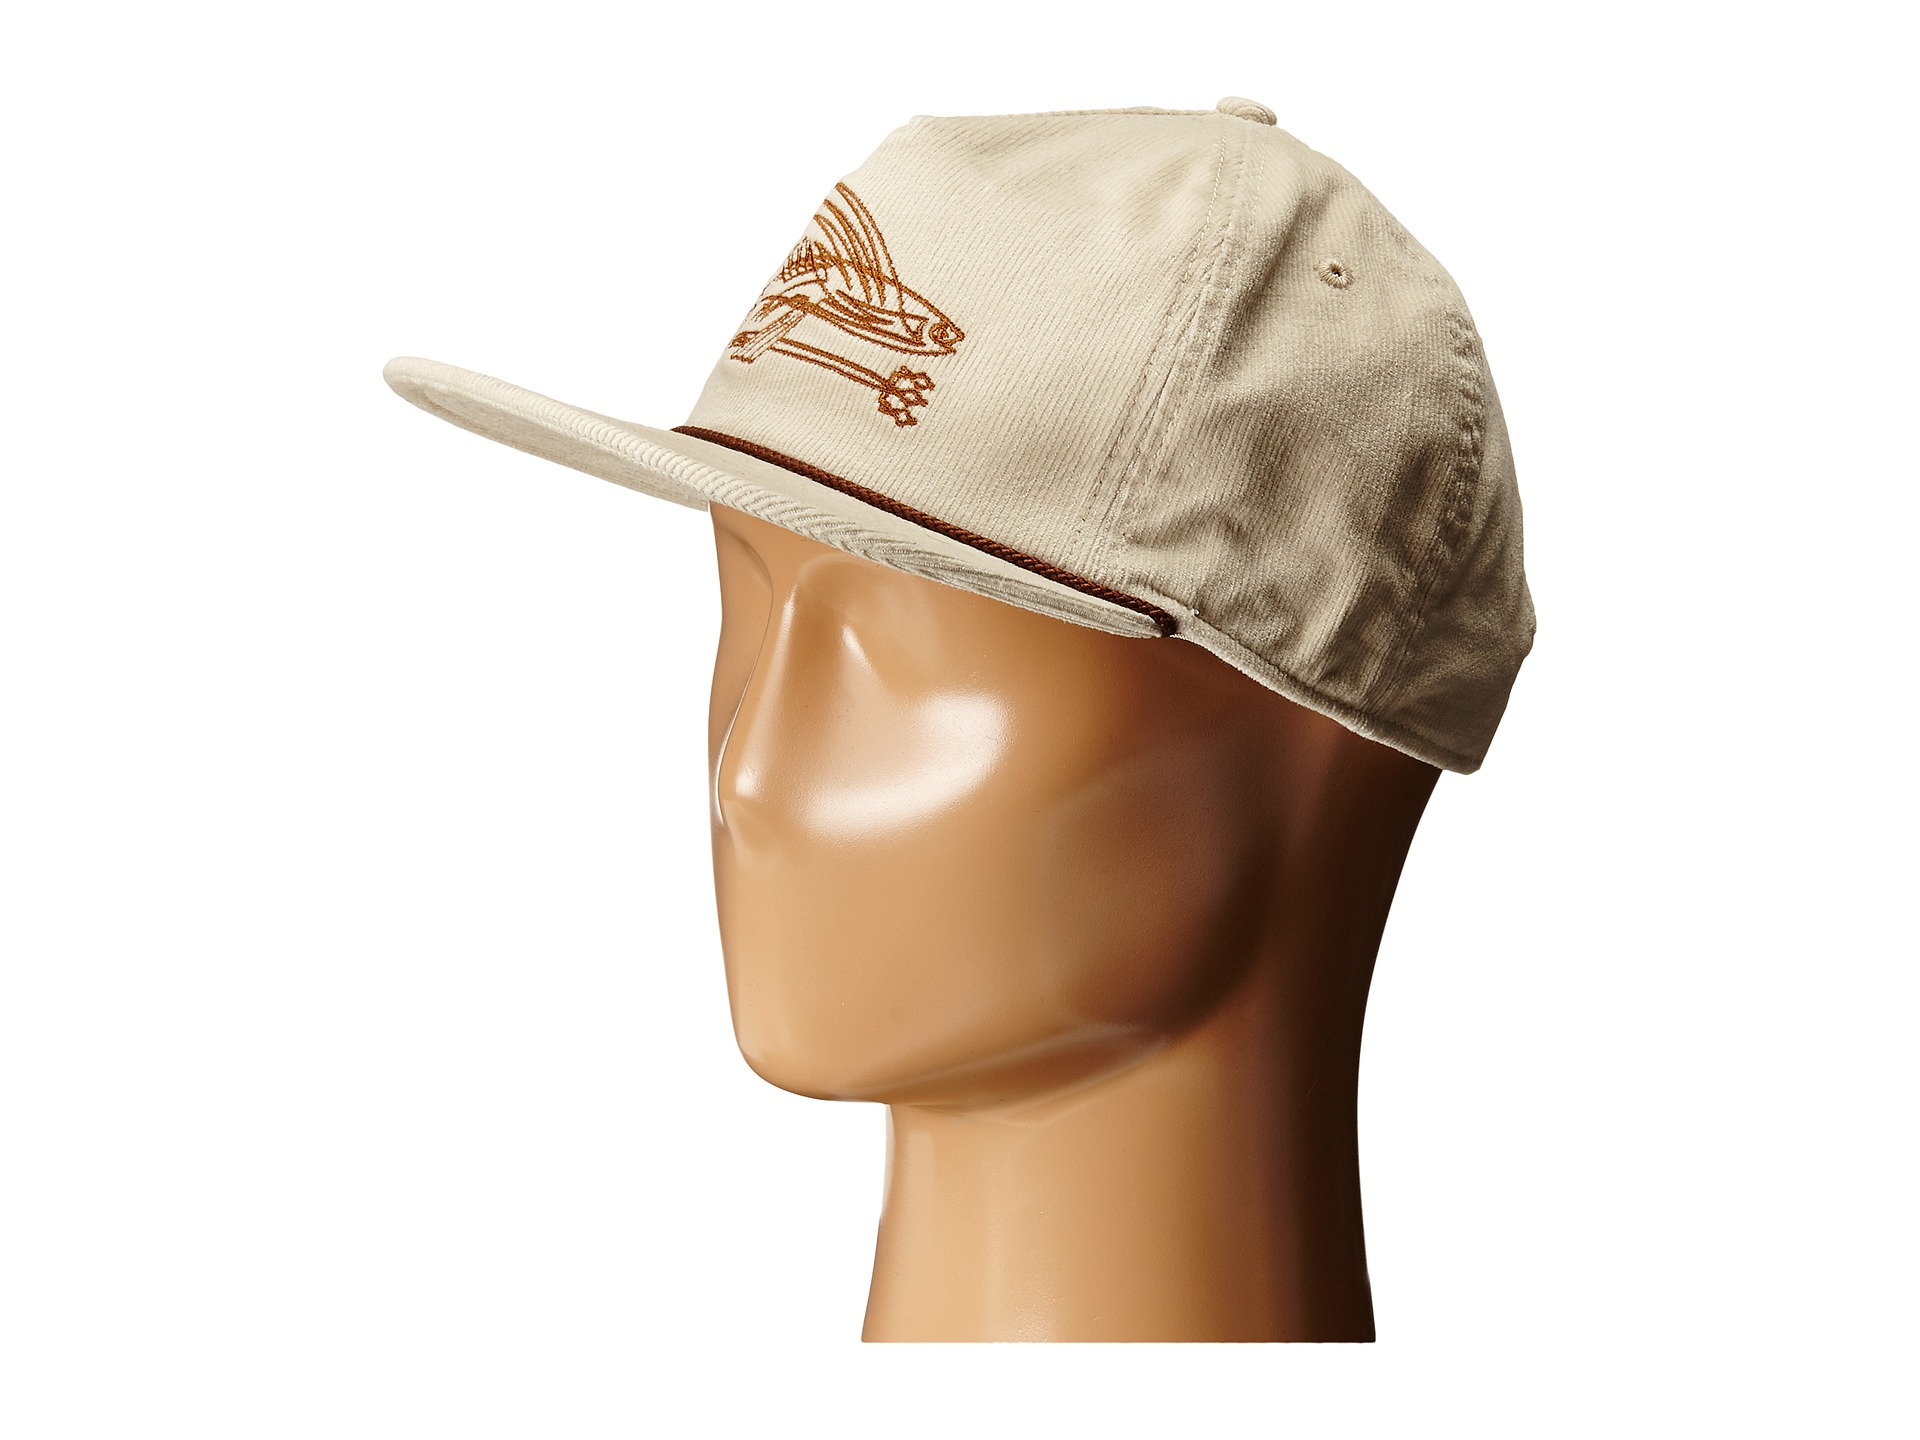 de2b8ac2 Patagonia Pinstripe Flying Fish Corduroy Hat in Natural - Lyst